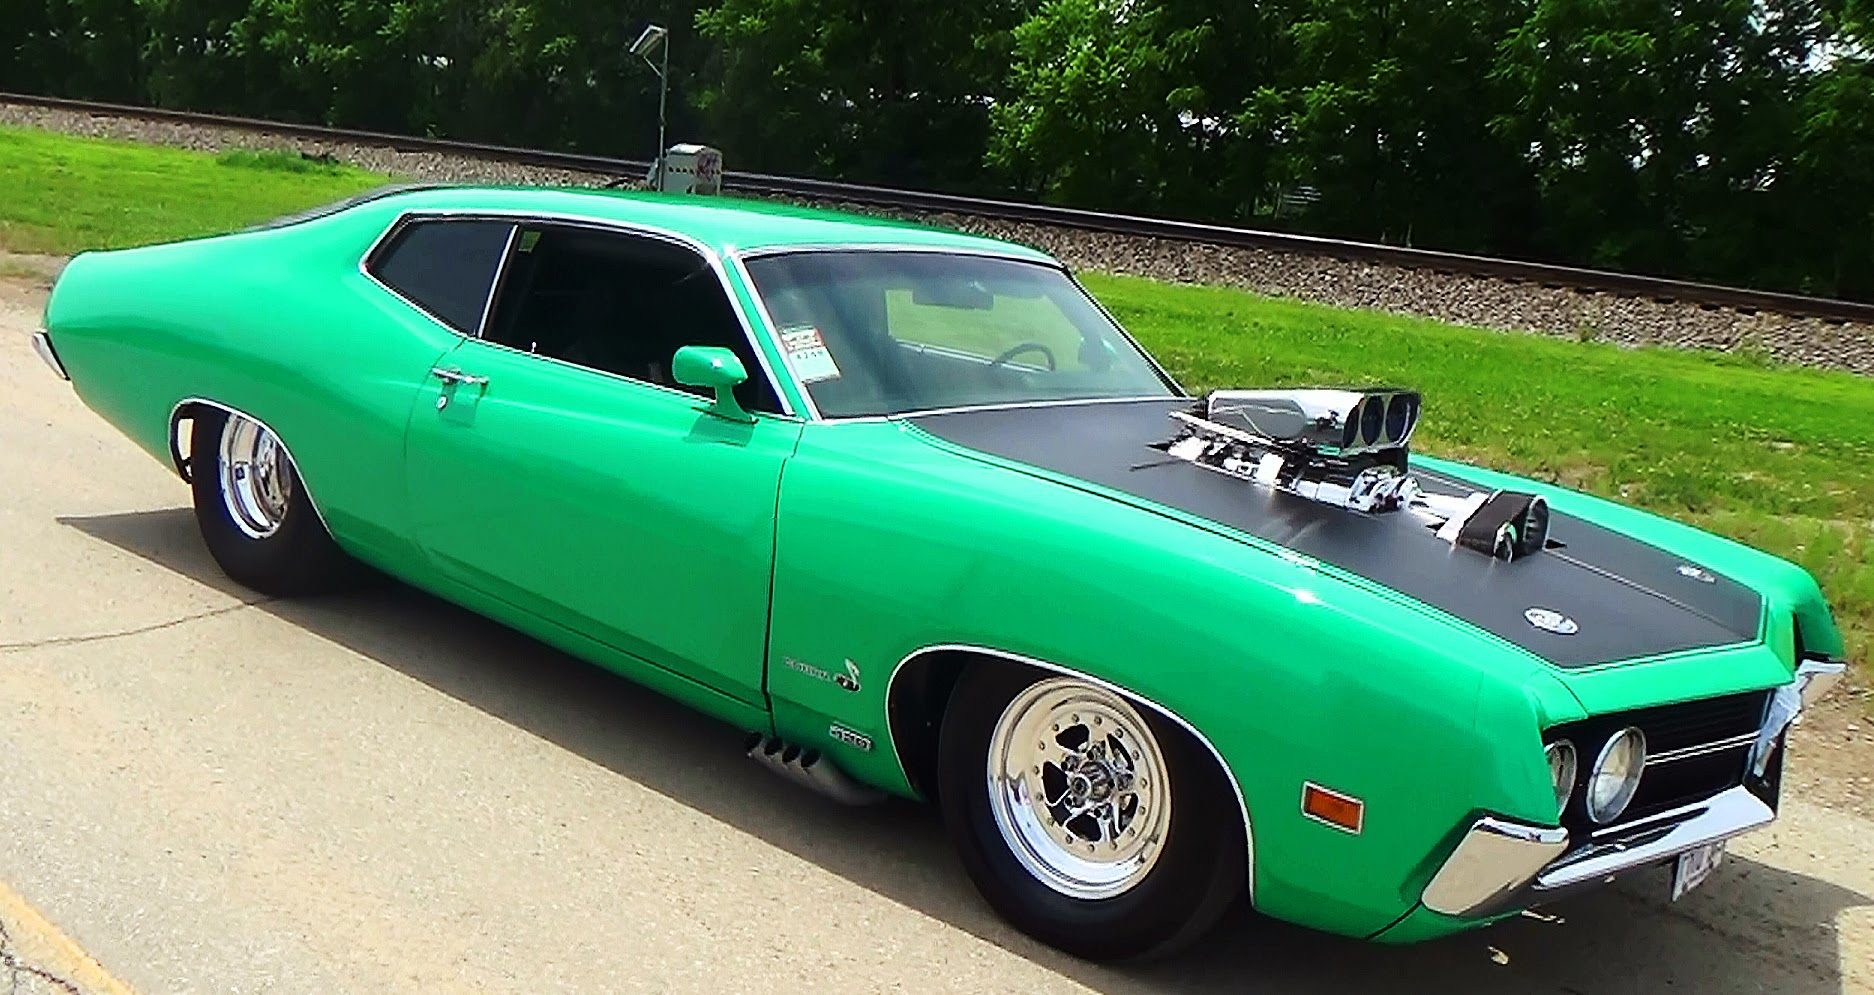 70 Torino Cobra Jet Pro Street Goodguys PPG Nationals 2015 - ScottieDTV - Coolest Cars On The Web